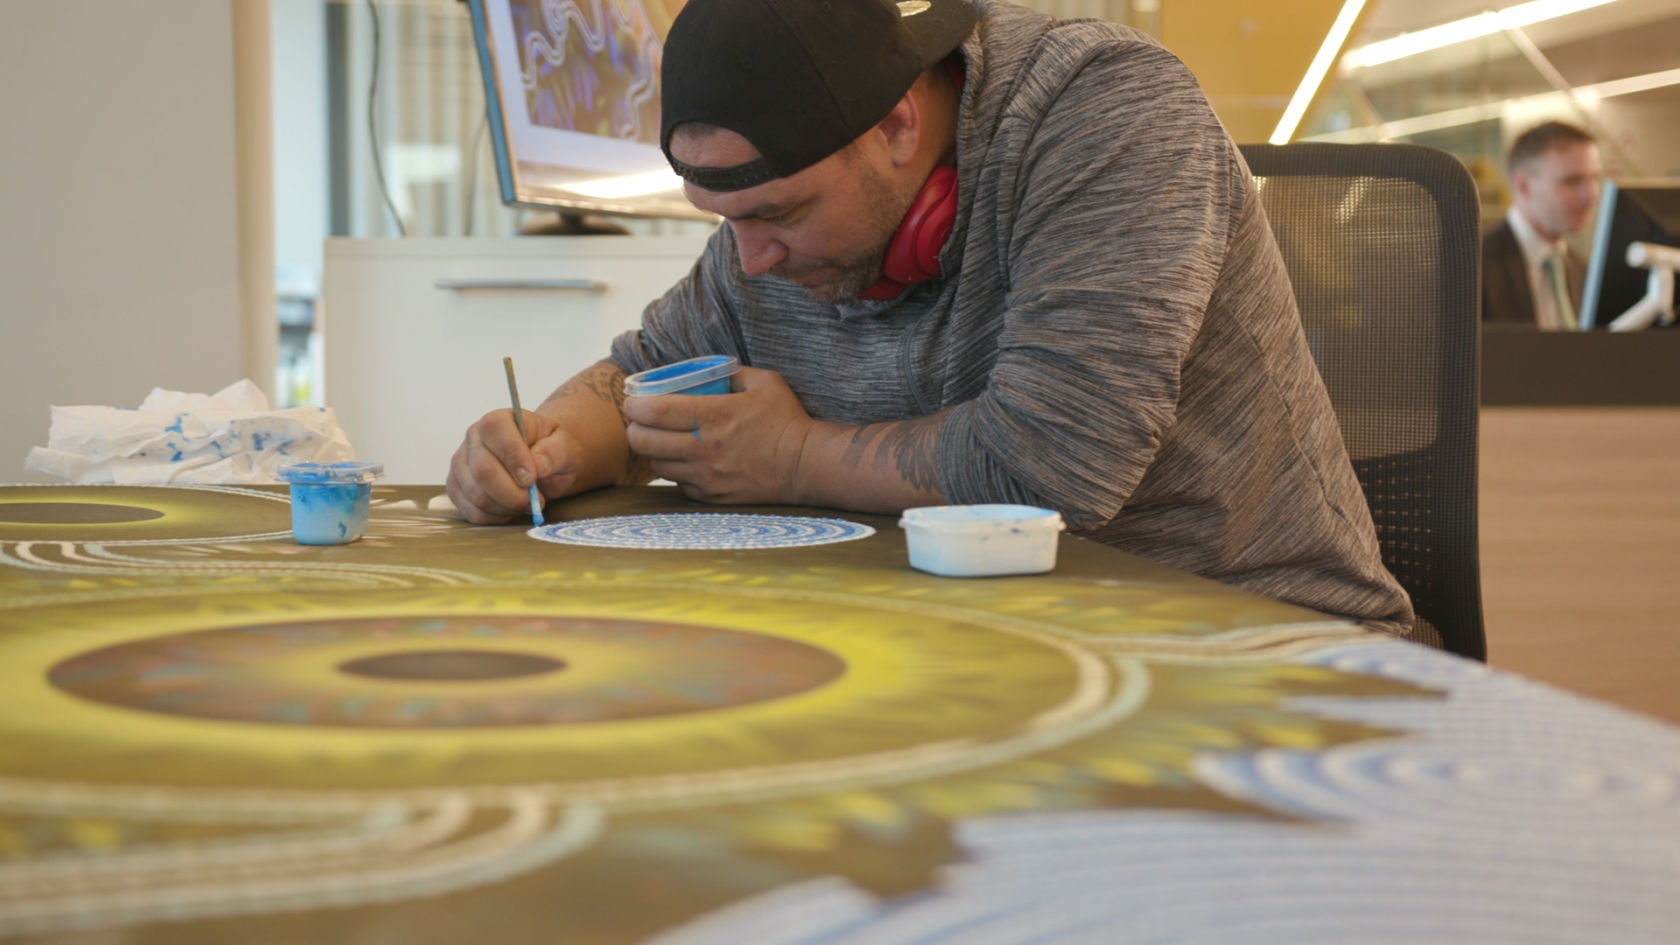 Aboriginal artist Jeremy Donovan - bringing culture to life